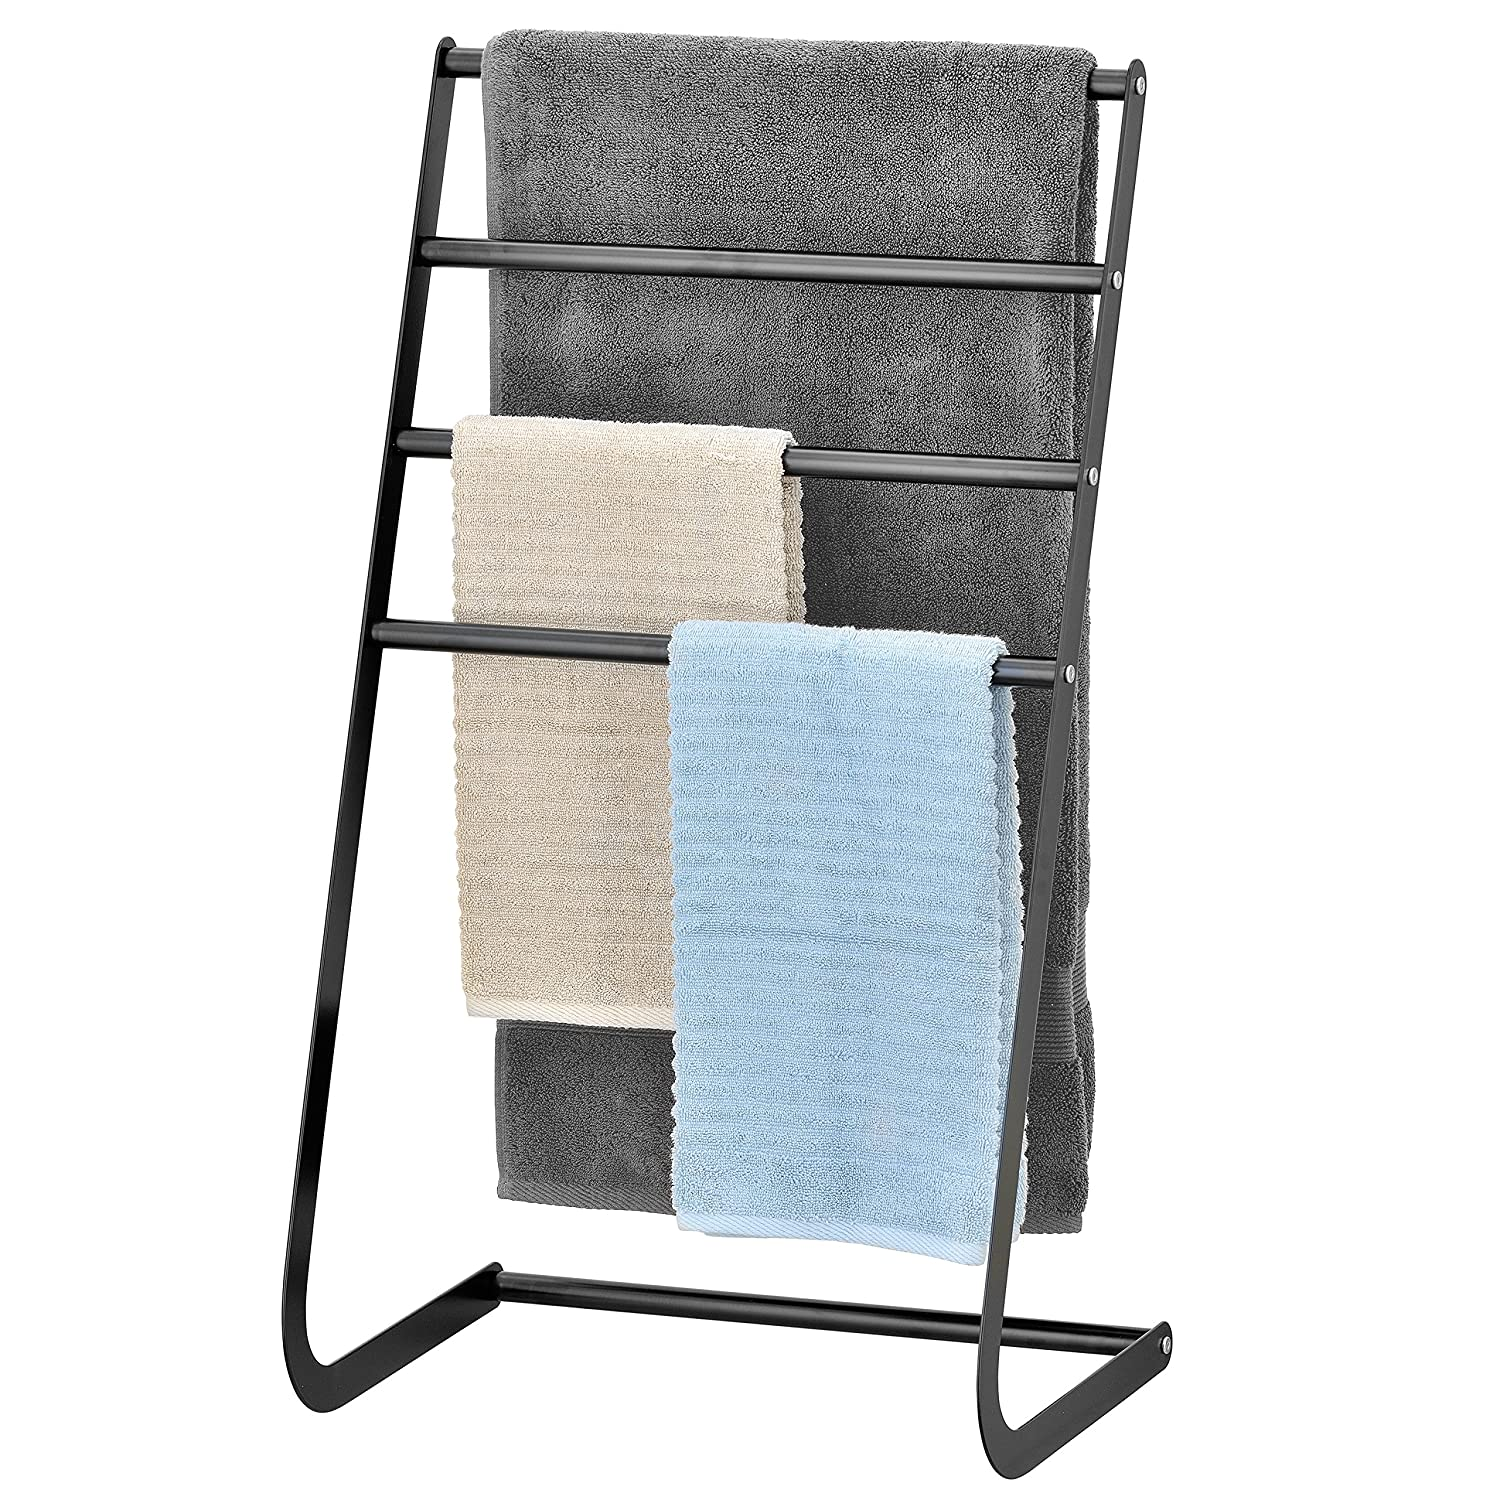 32 Inch Freestanding Metal Towel Rack 4 Tier Laundry Drying Stand Black MyGift TB-BATH0105BLK